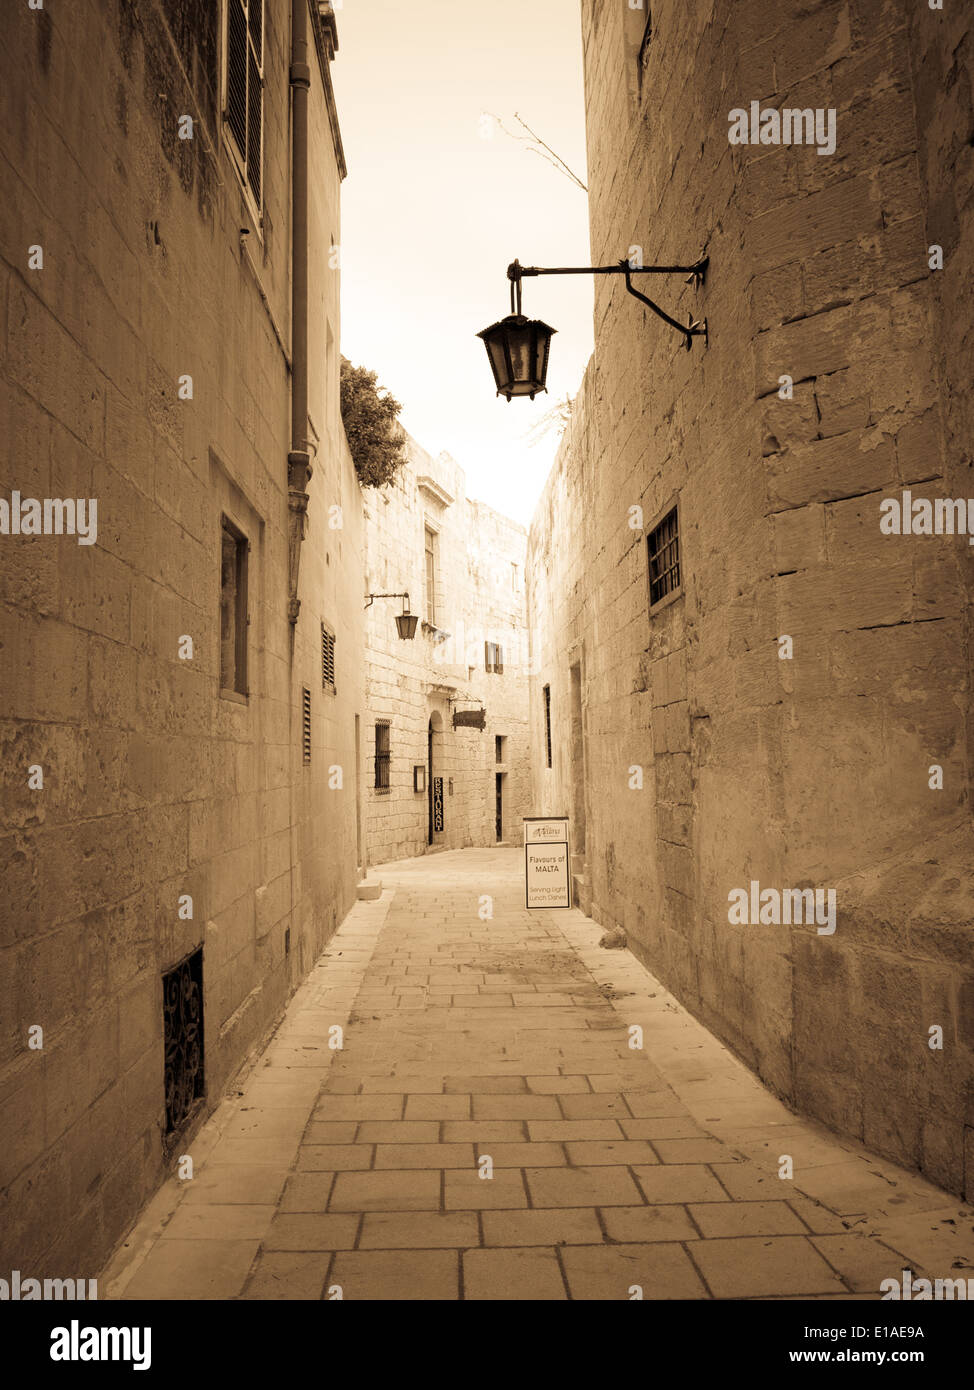 A monotone, sepia view of a narrow medieval street in Mdina, Malta. Malta's old capital, Mdina is also known as Stock Photo